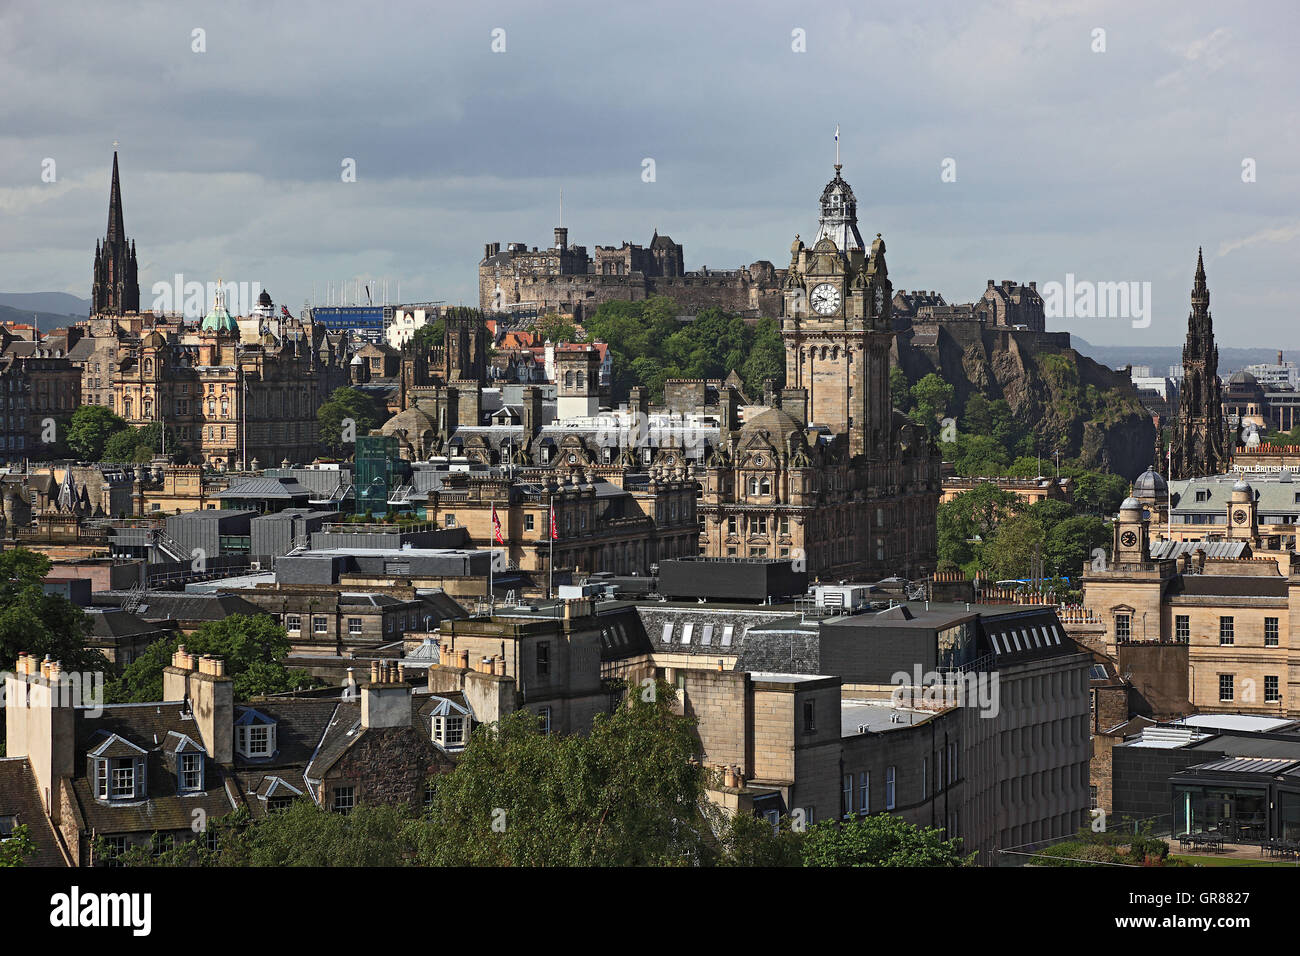 Scotland, Edinburgh, look of the cal tone Hill on the city centre, Old Town - Stock Image